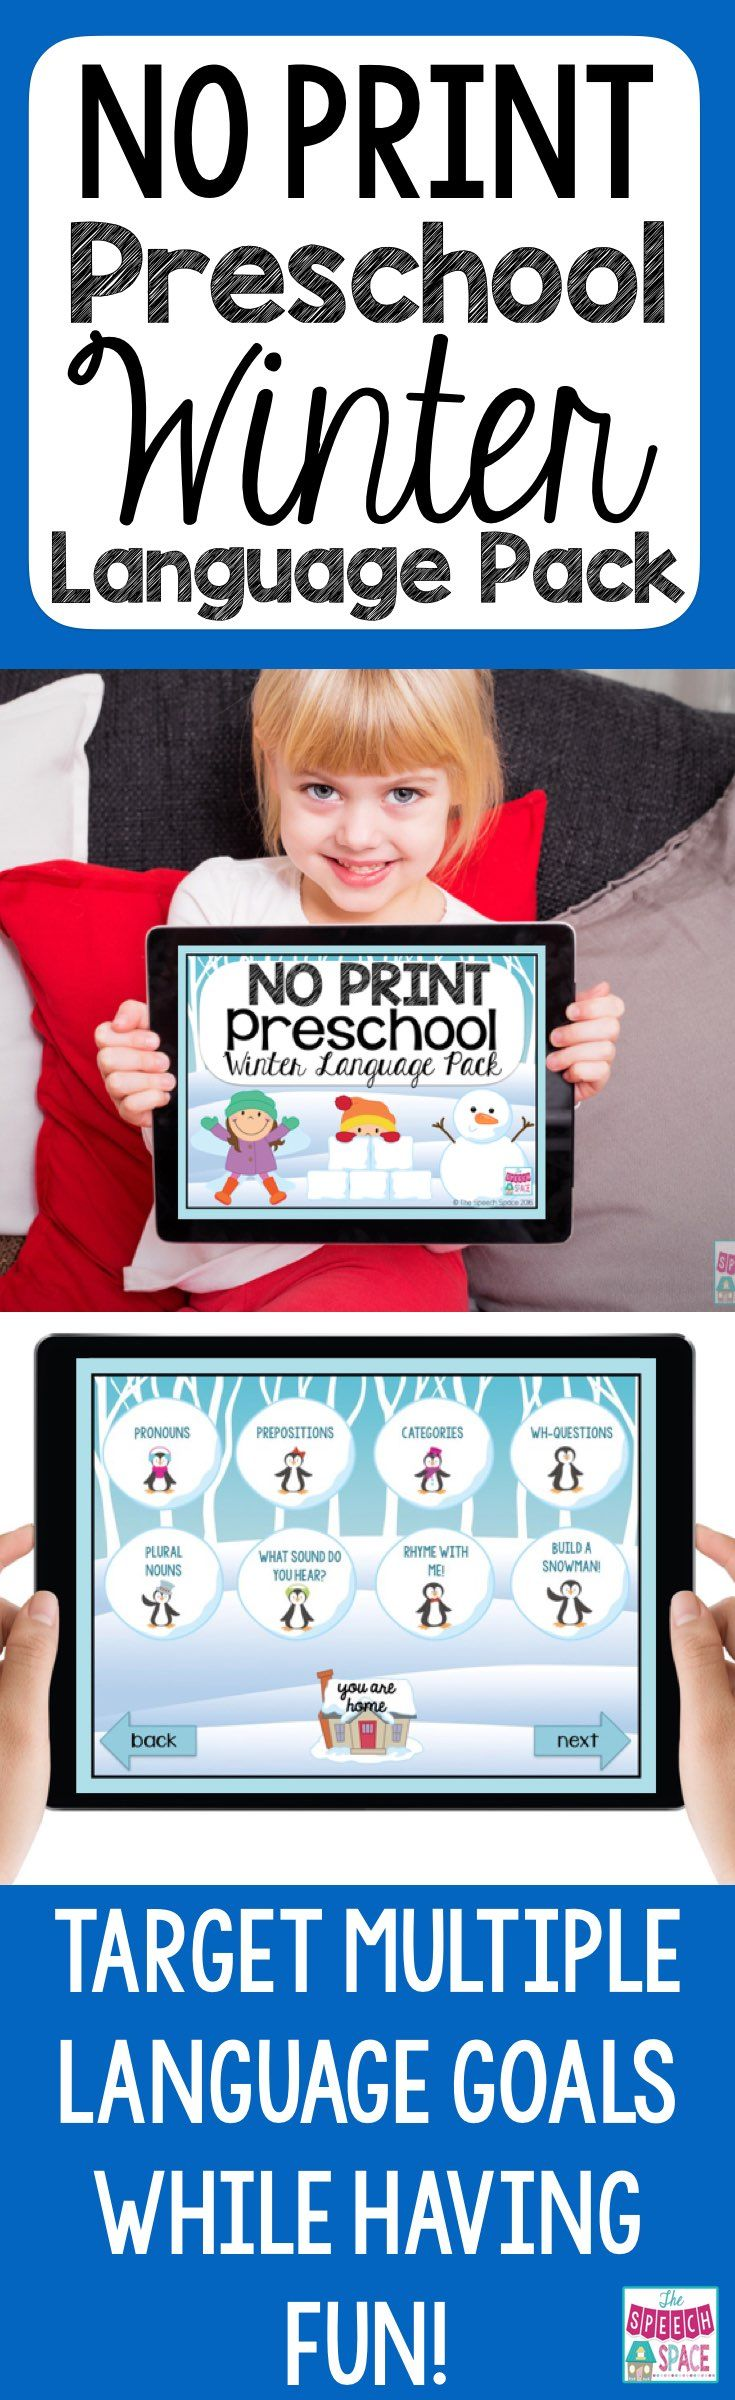 If you are a busy speech therapist that wants engaging speech therapy materials, but doesn't have time to prep, then this winter no print is for you!  It targets multiple language goals and is perfect for your PreK-1st students.